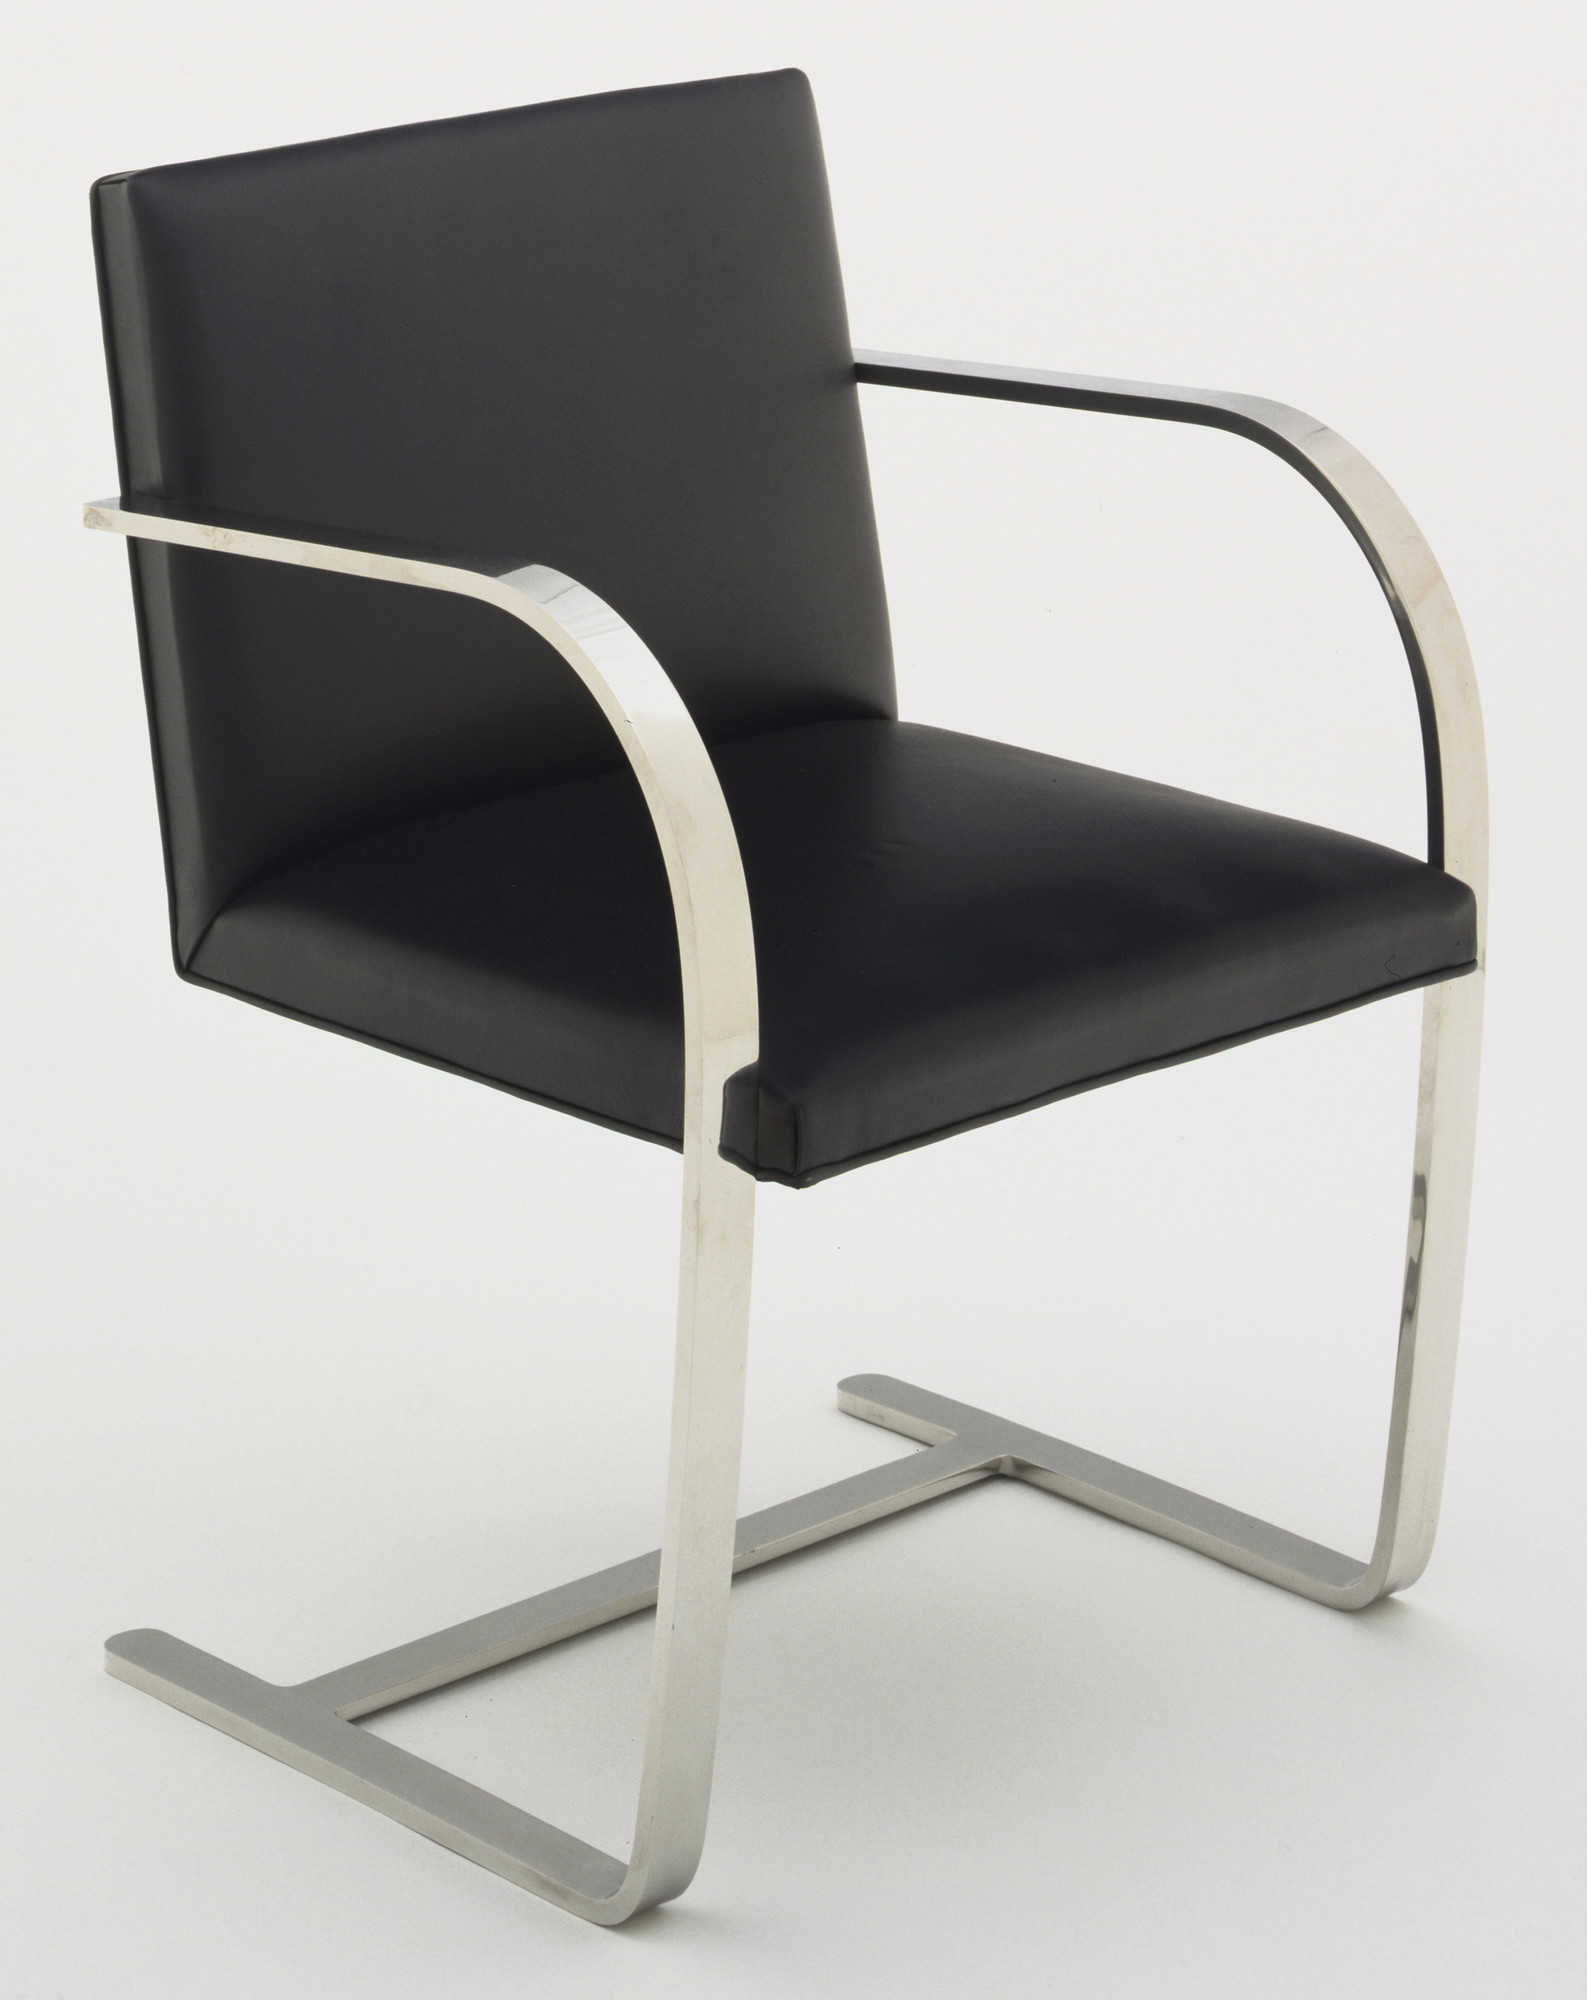 Ludwig Mies Van Der Rohe Brno Chair Designed 1929 30 This Example